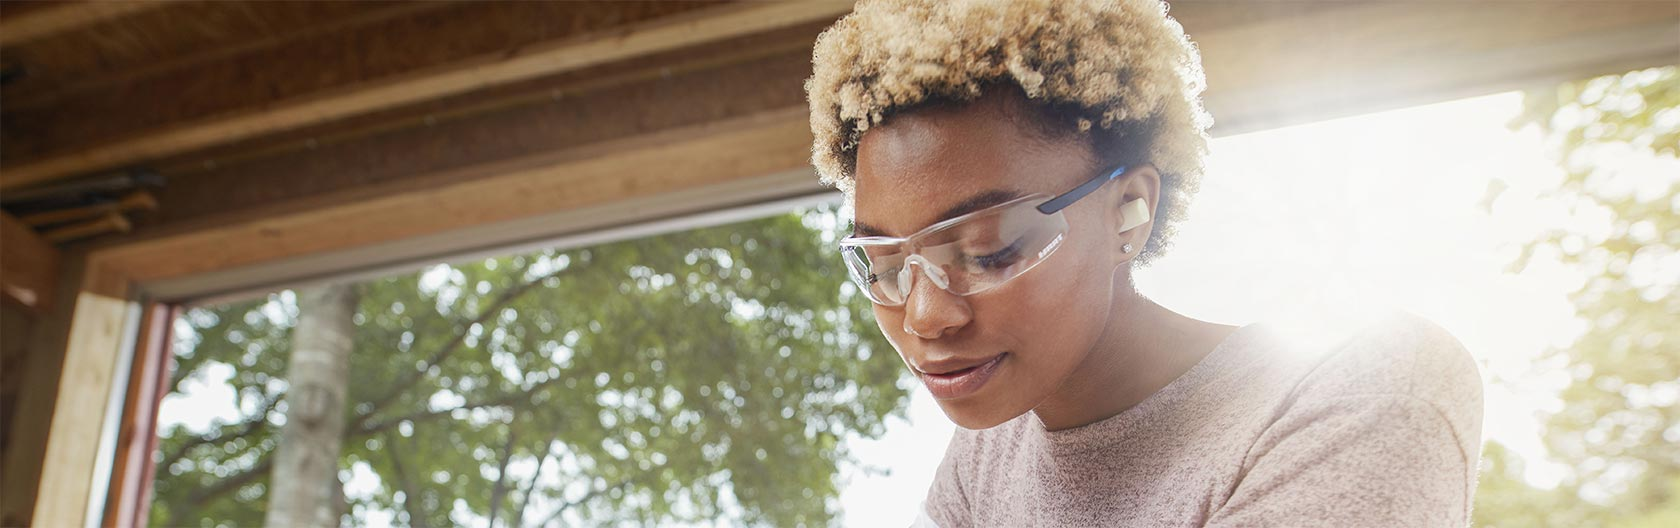 Safety Glasses header image